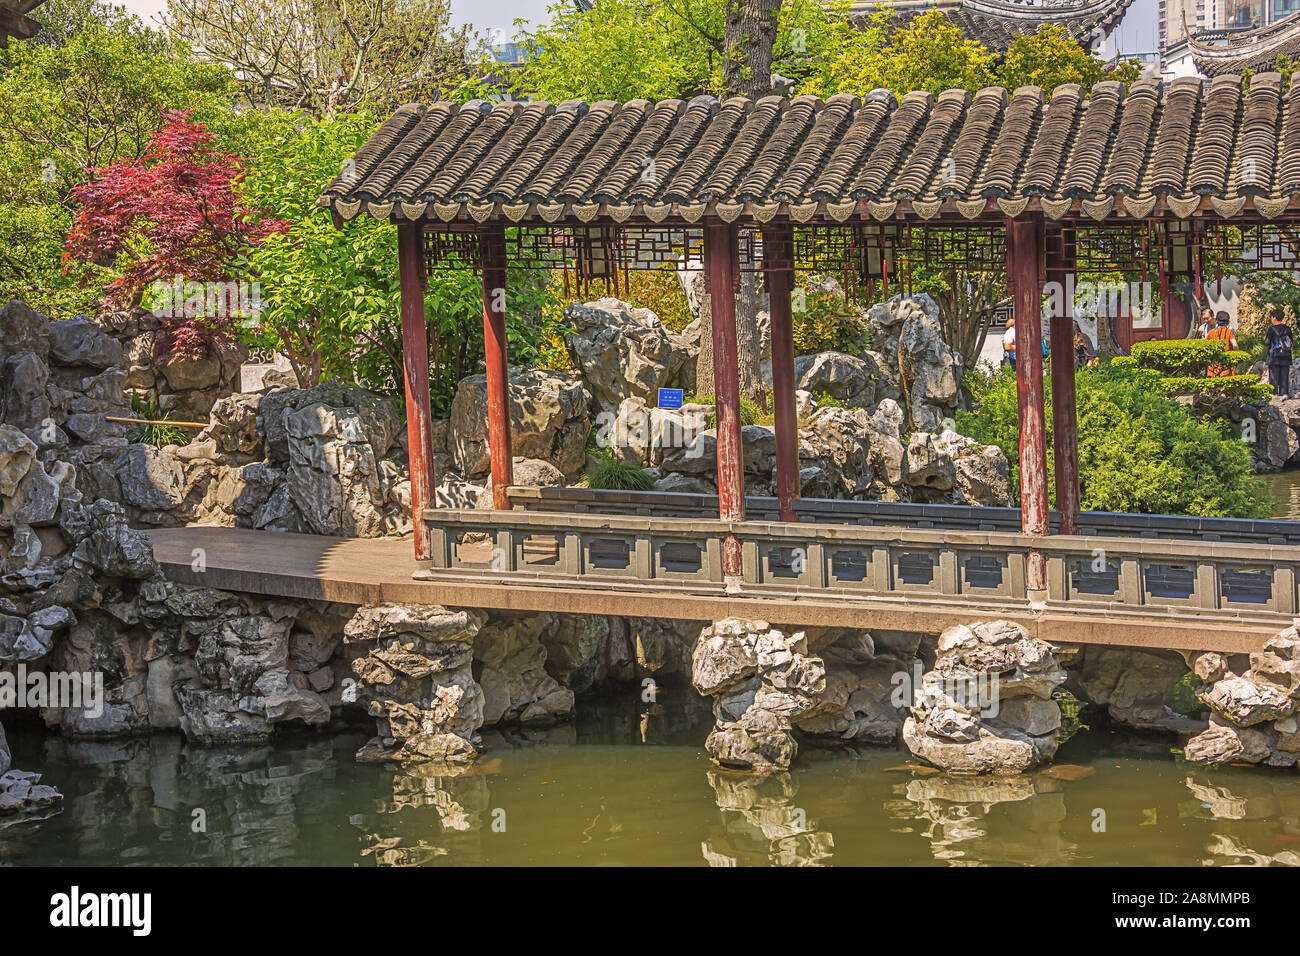 Editorial: SHANGHAI, CHINA, April 18, 2019 - Covered bridge over a pond in the Yuyuan Garden in Shanghai Stock Photo